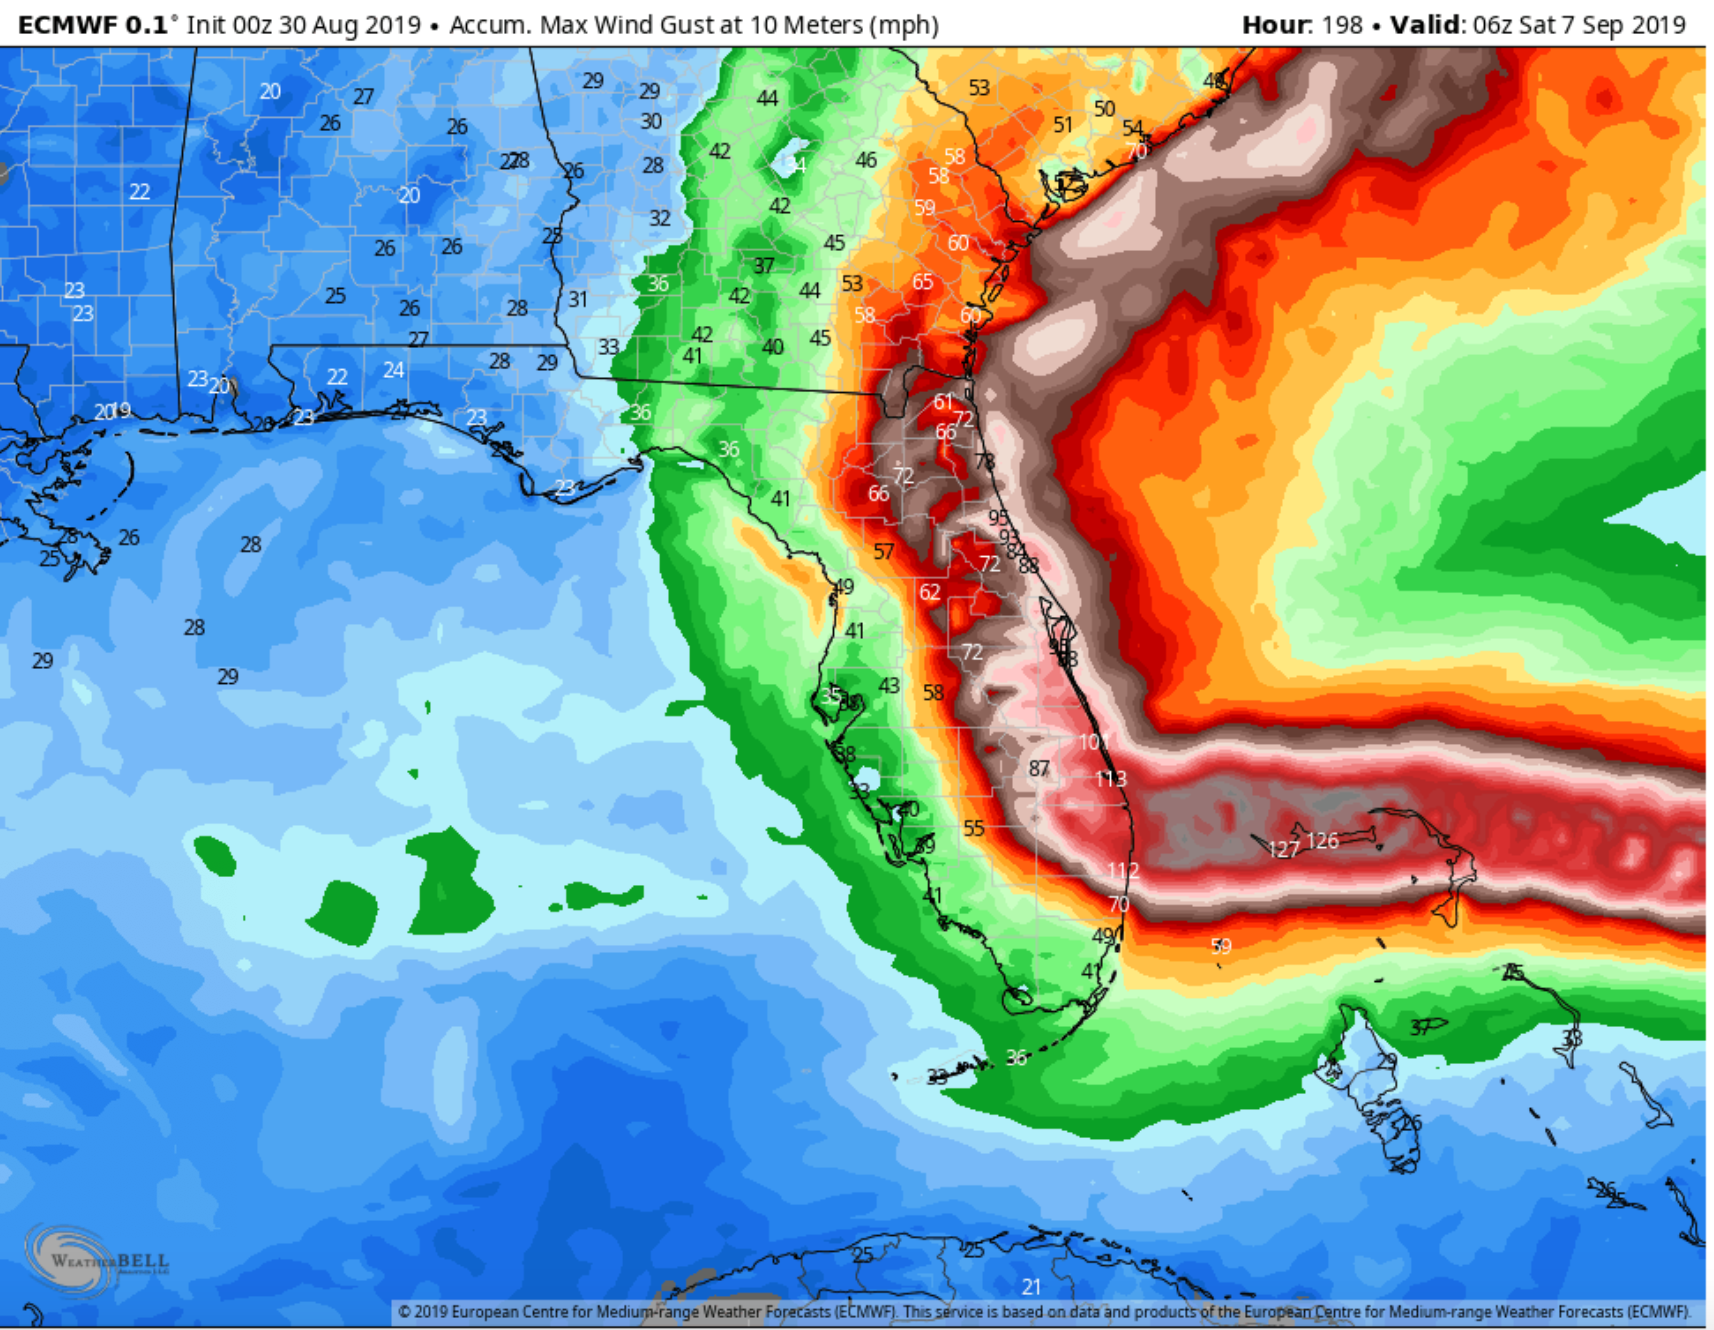 Wind gust forecast (mph) from the EURO model shows the possible scale of wind impacts.